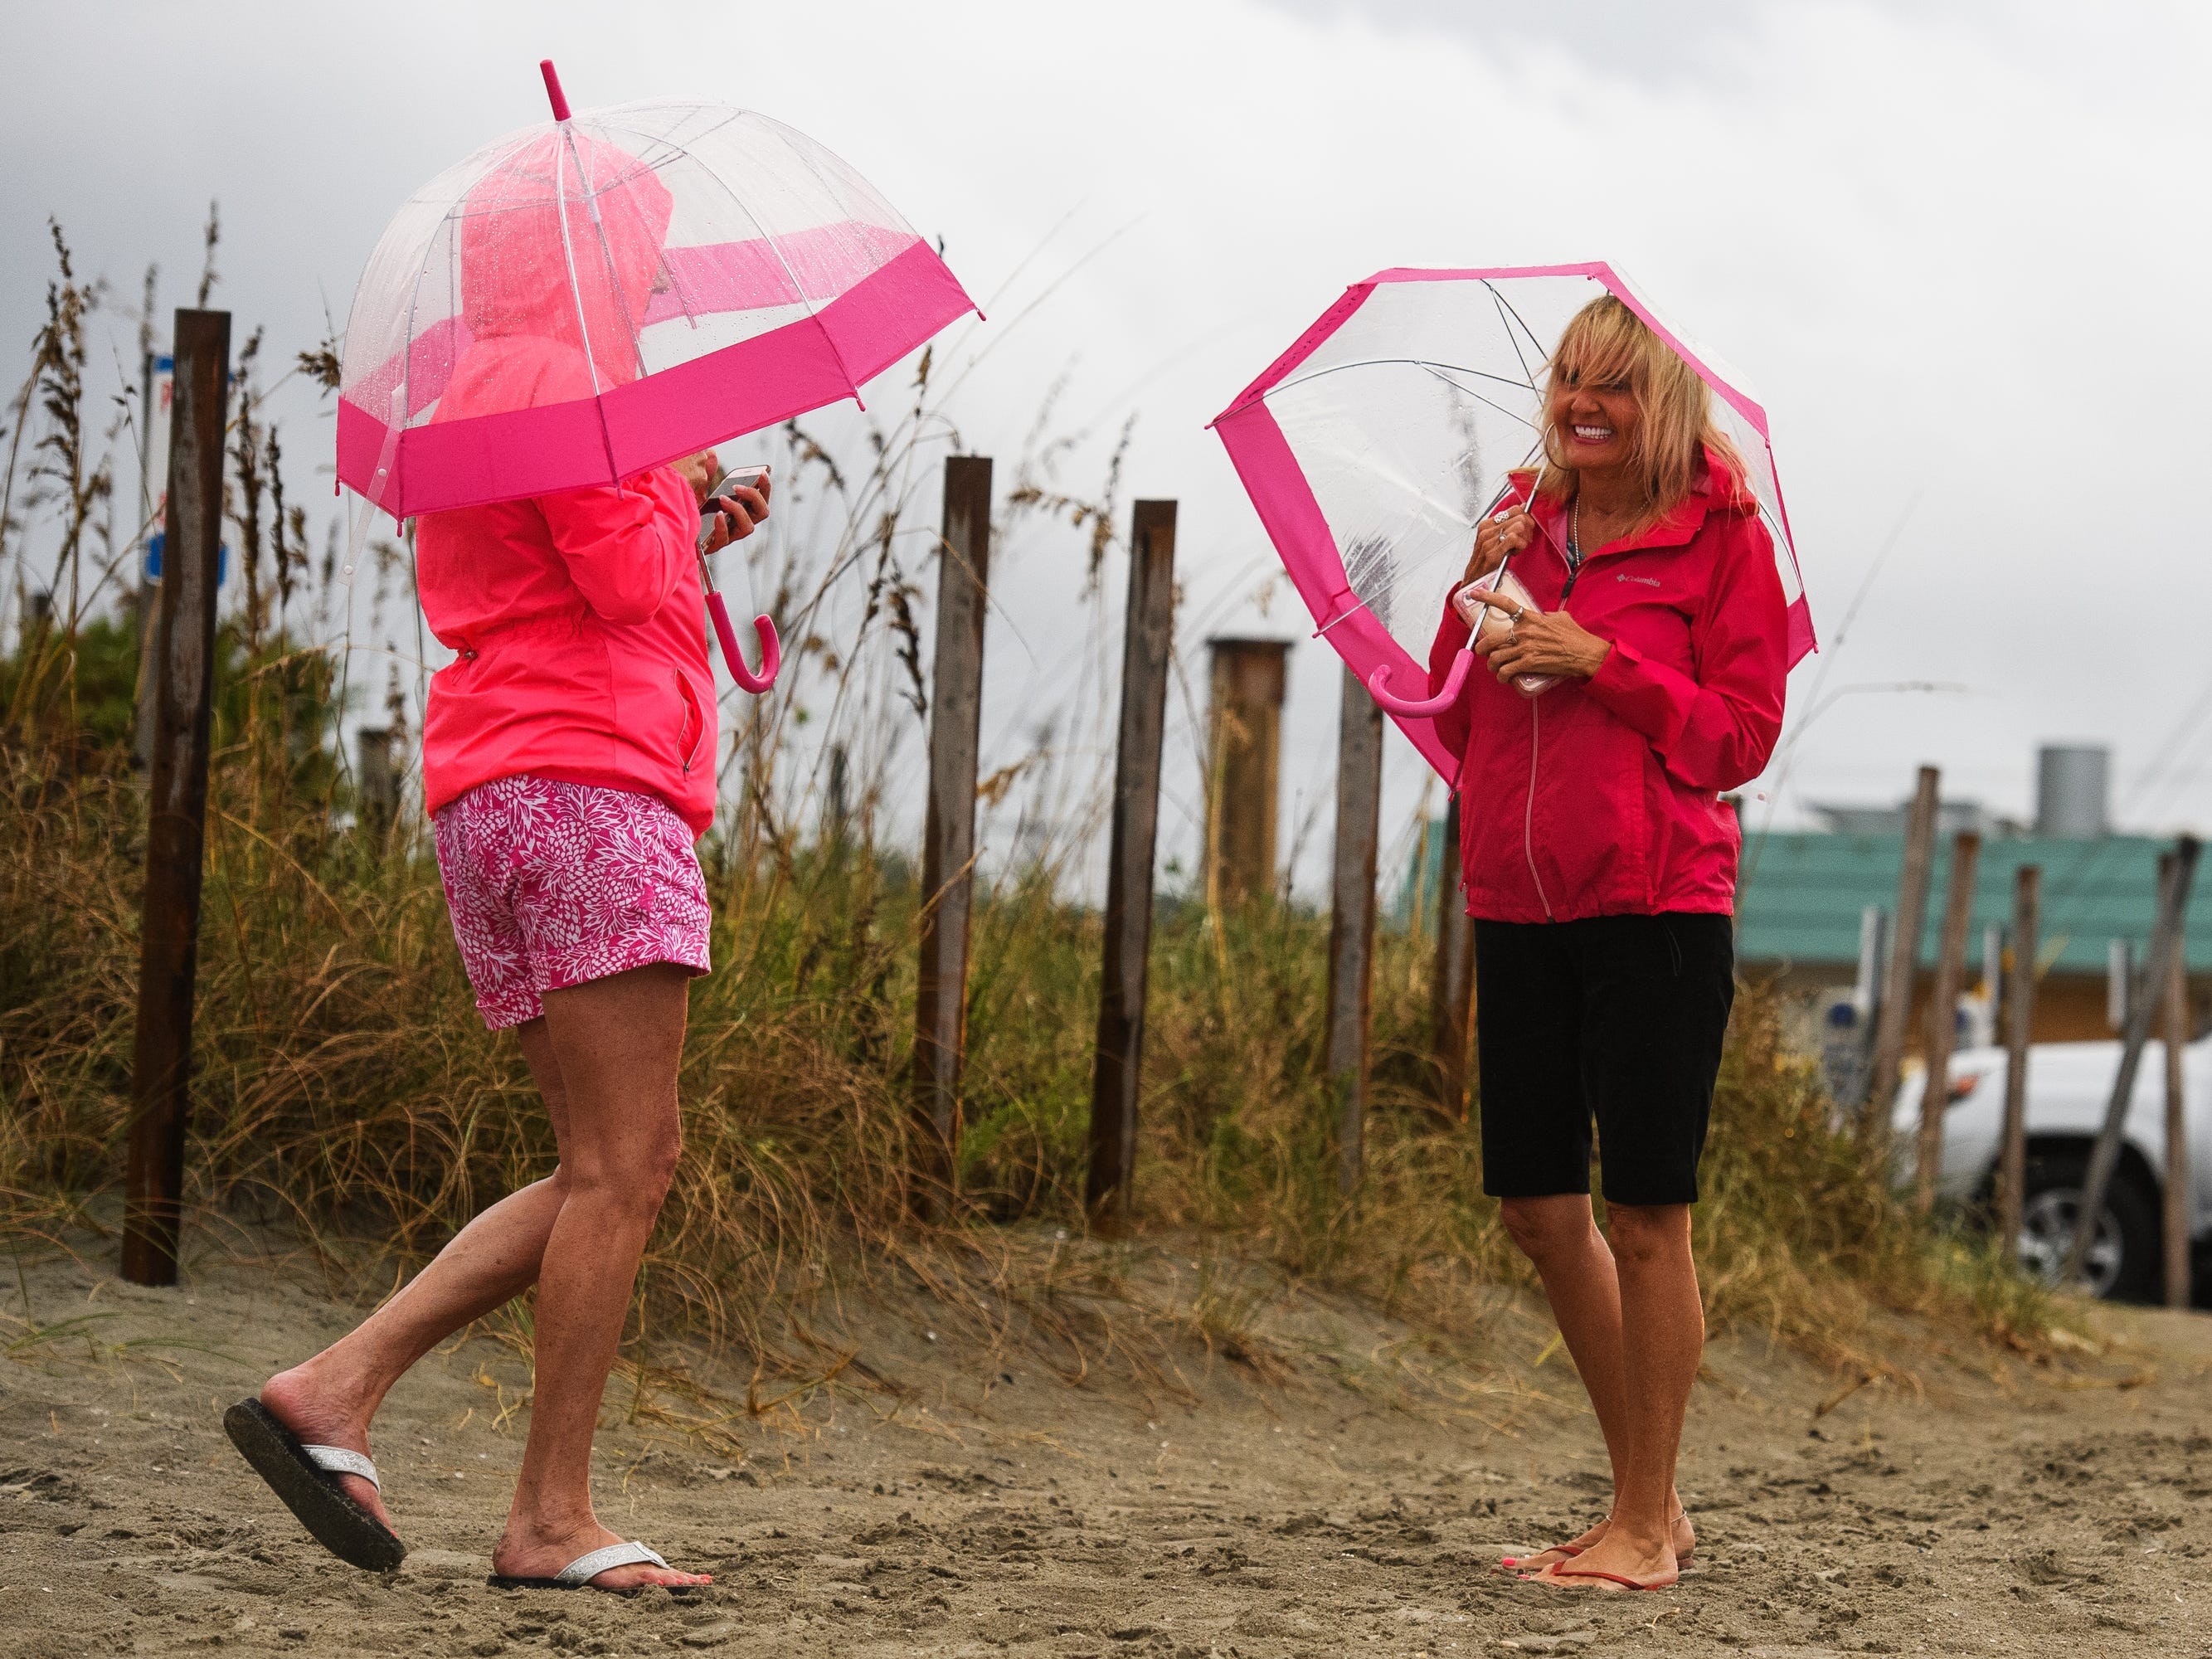 Karen Glass, left, and Deborah Murray leave Cherry Grove Beach in North Myrtle Beach after being informed of a curfew due to the arrival of Hurricane Florence on Thursday, Sept. 13, 2018.